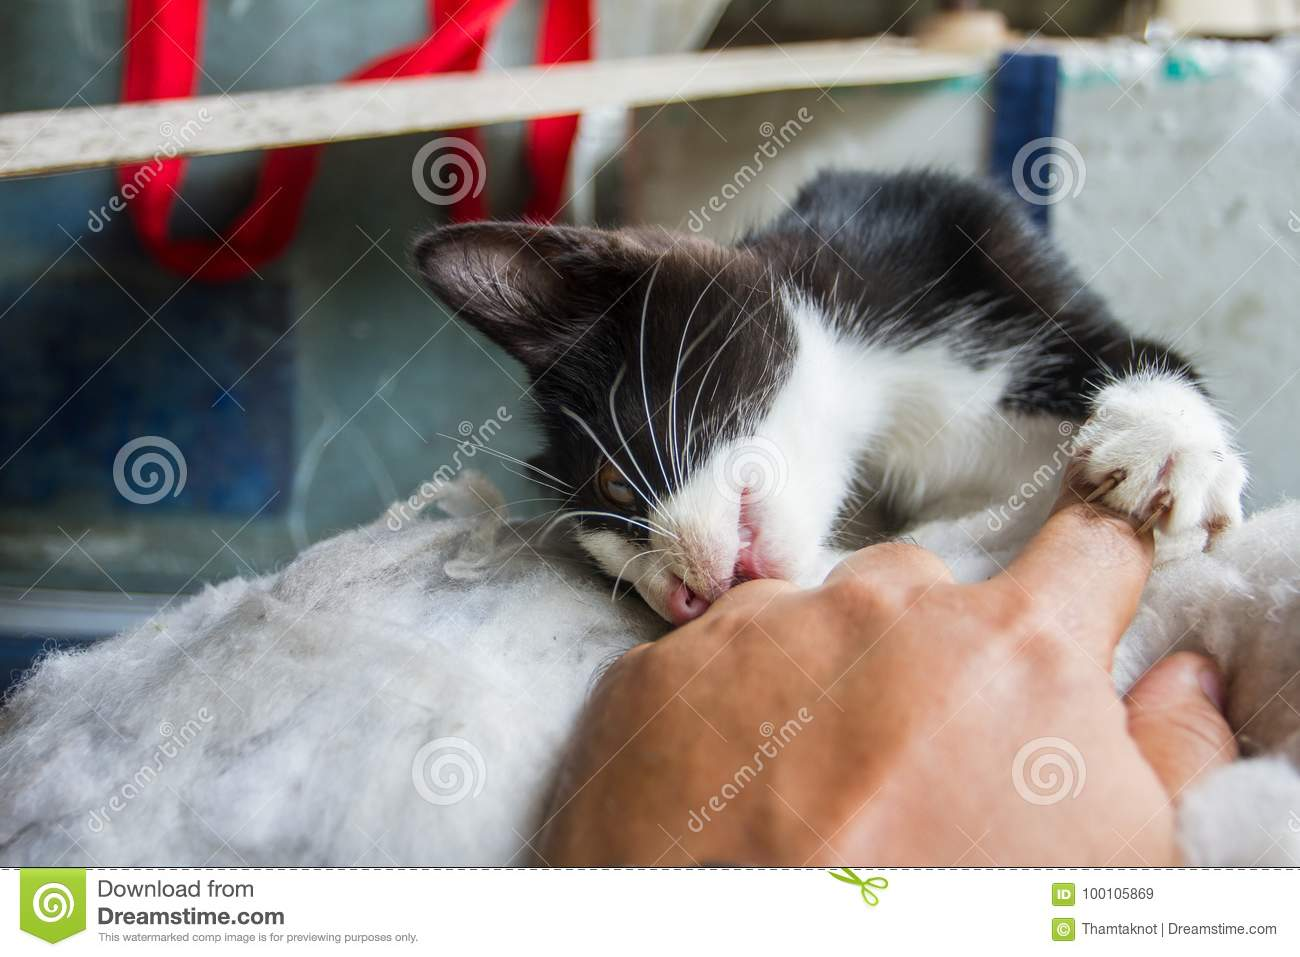 Kitten bites your finger, it is fun to play, which is in the background.